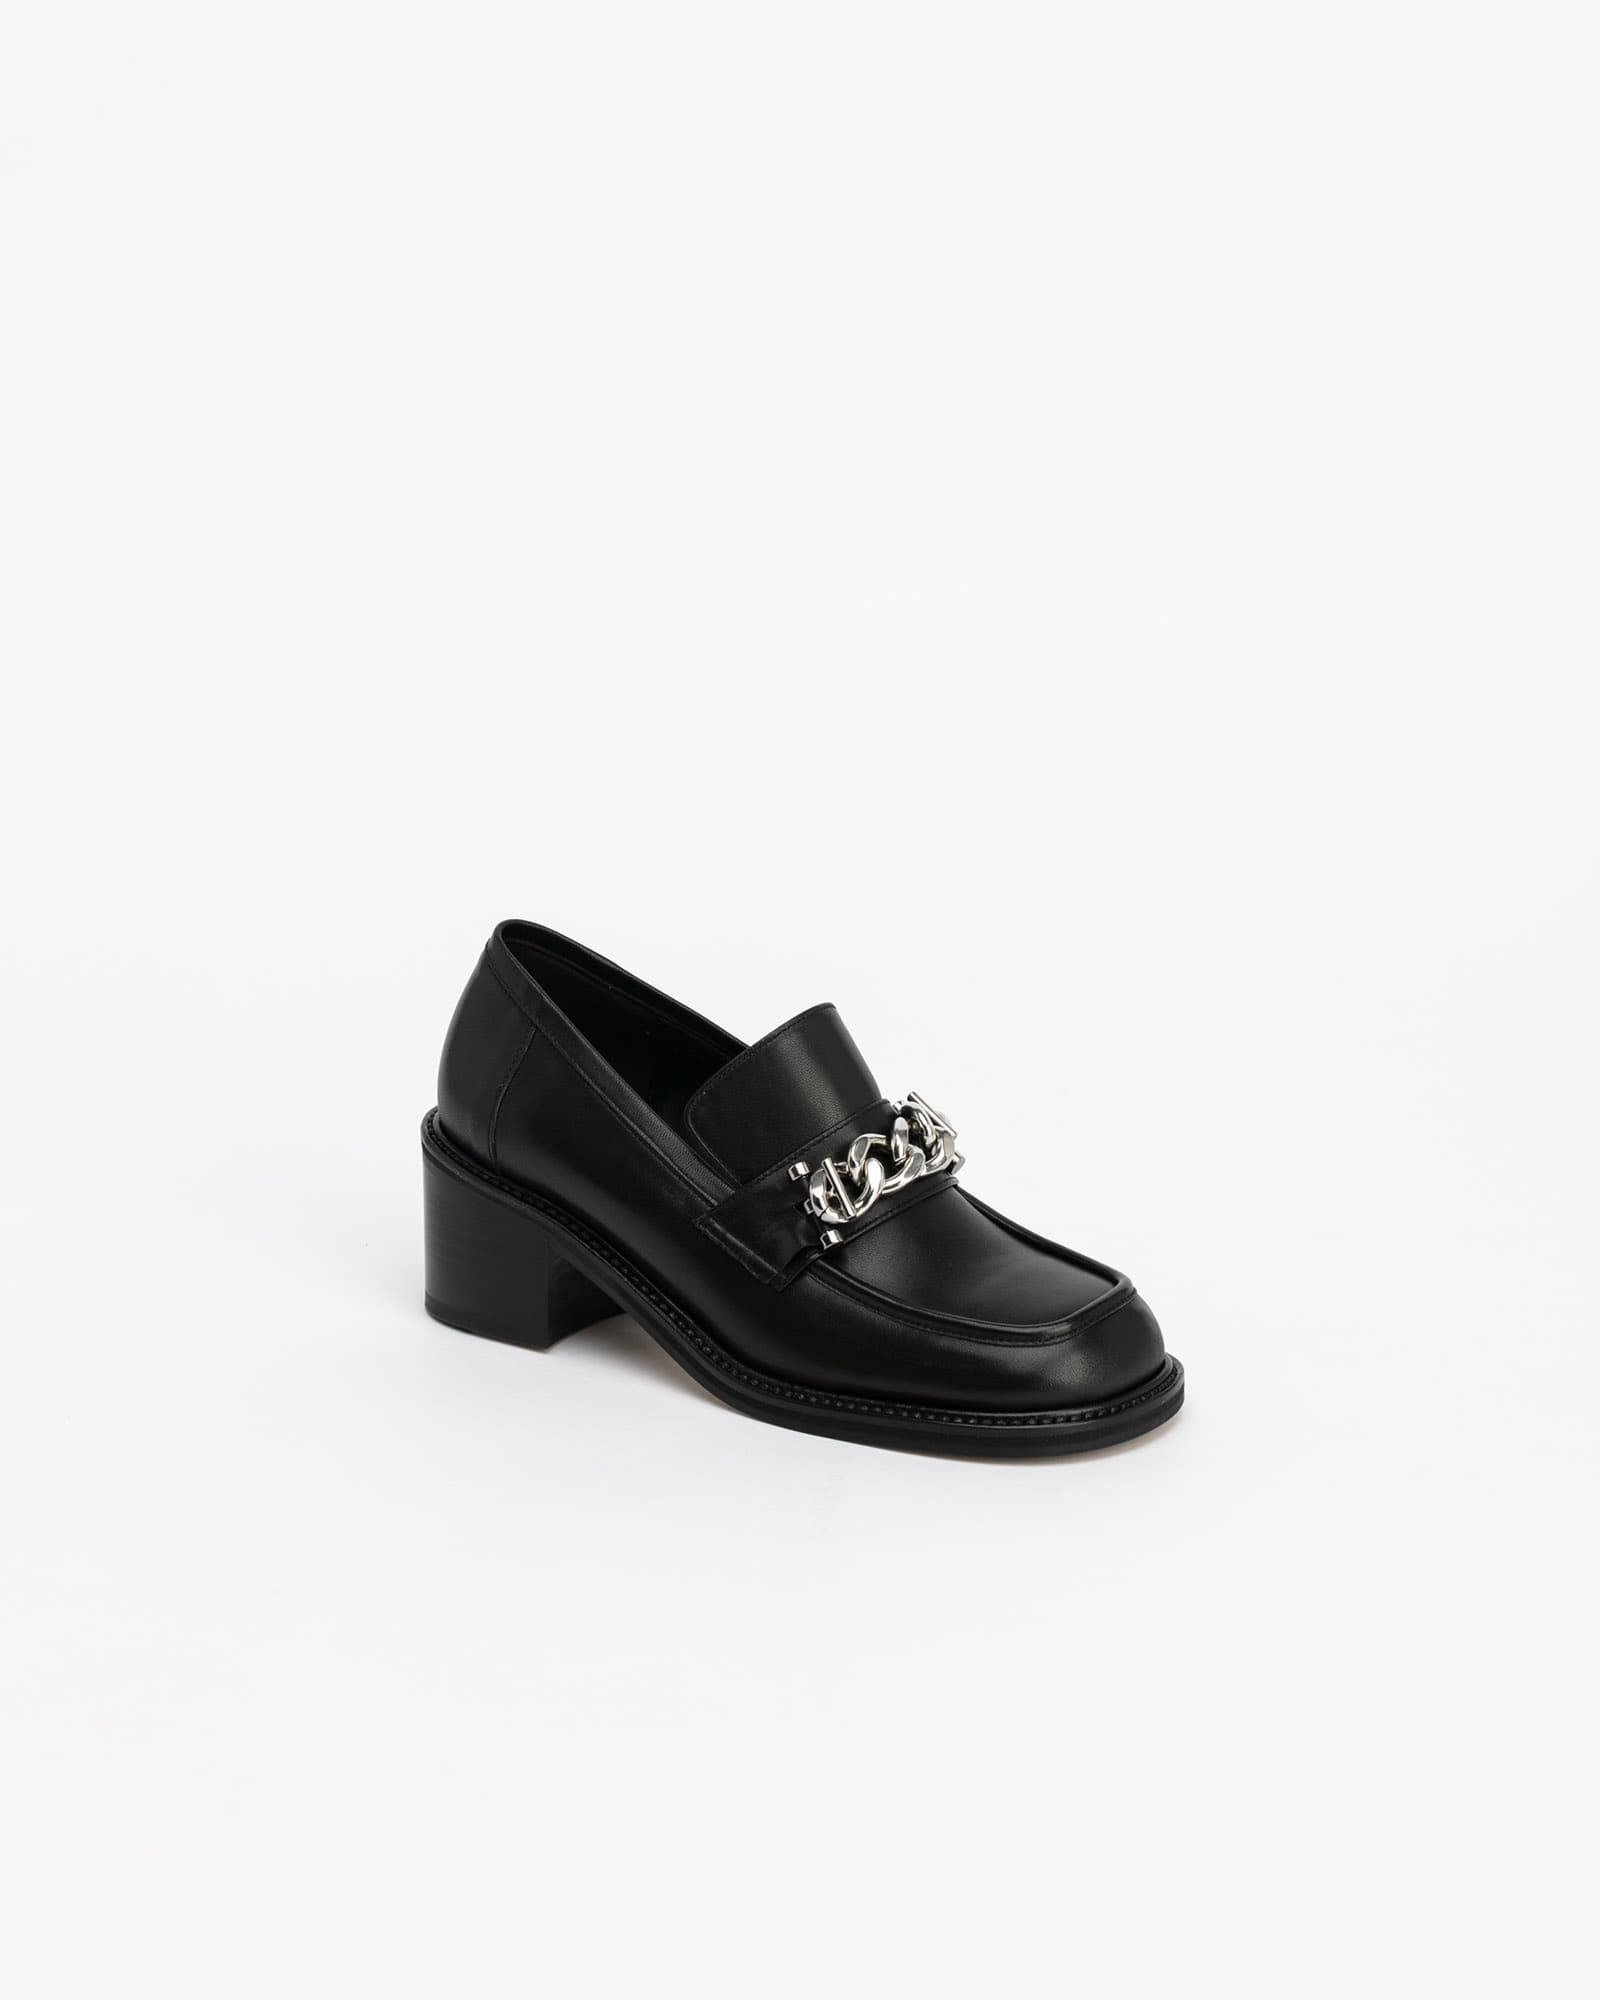 Gutissimo Loafers in Black